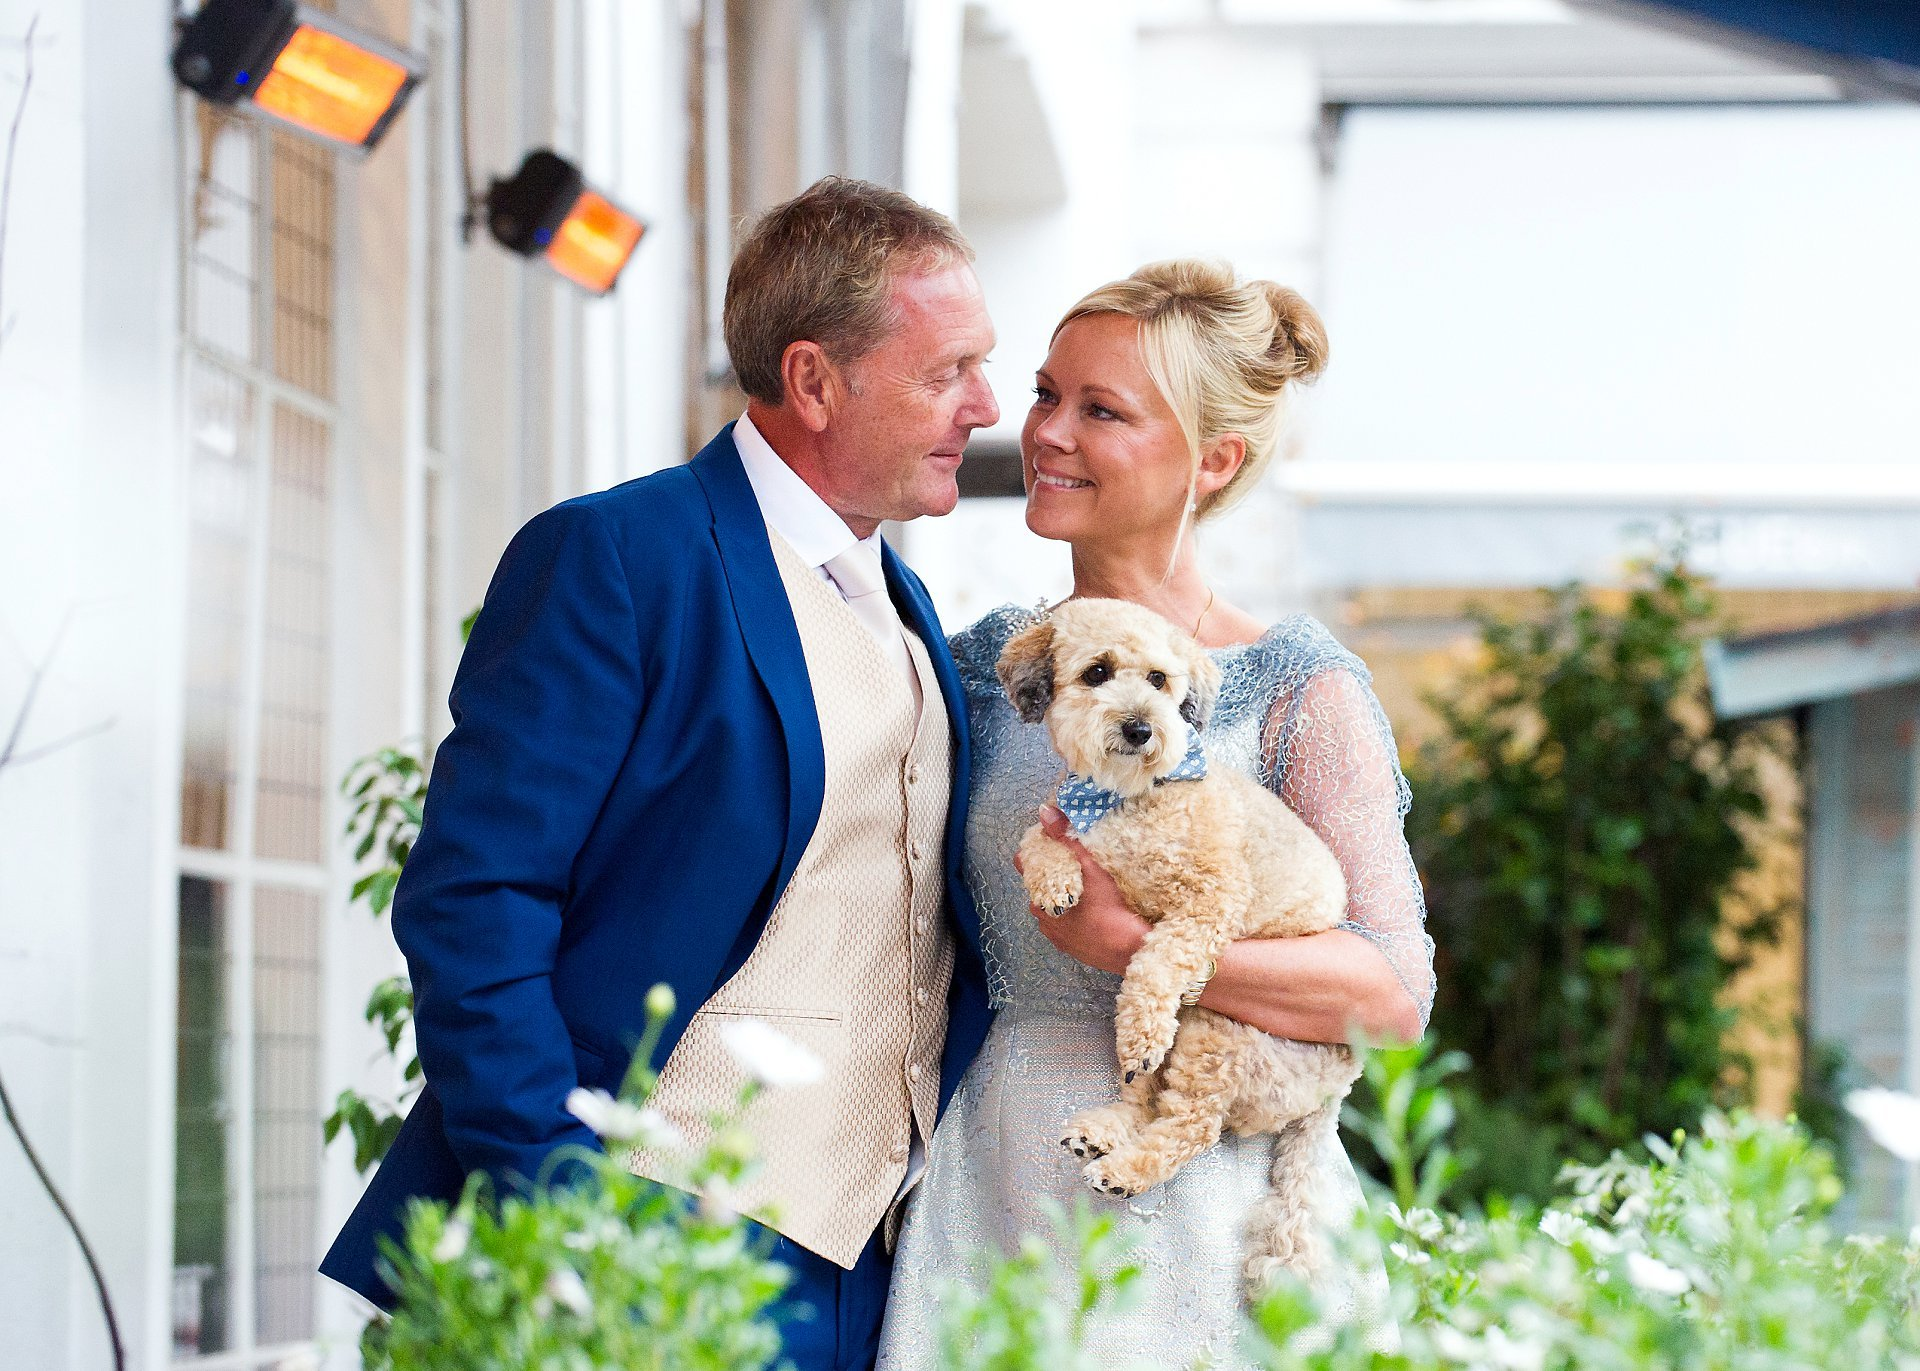 bluebird chelsea wedding reception showing a bride and groom with their little dog